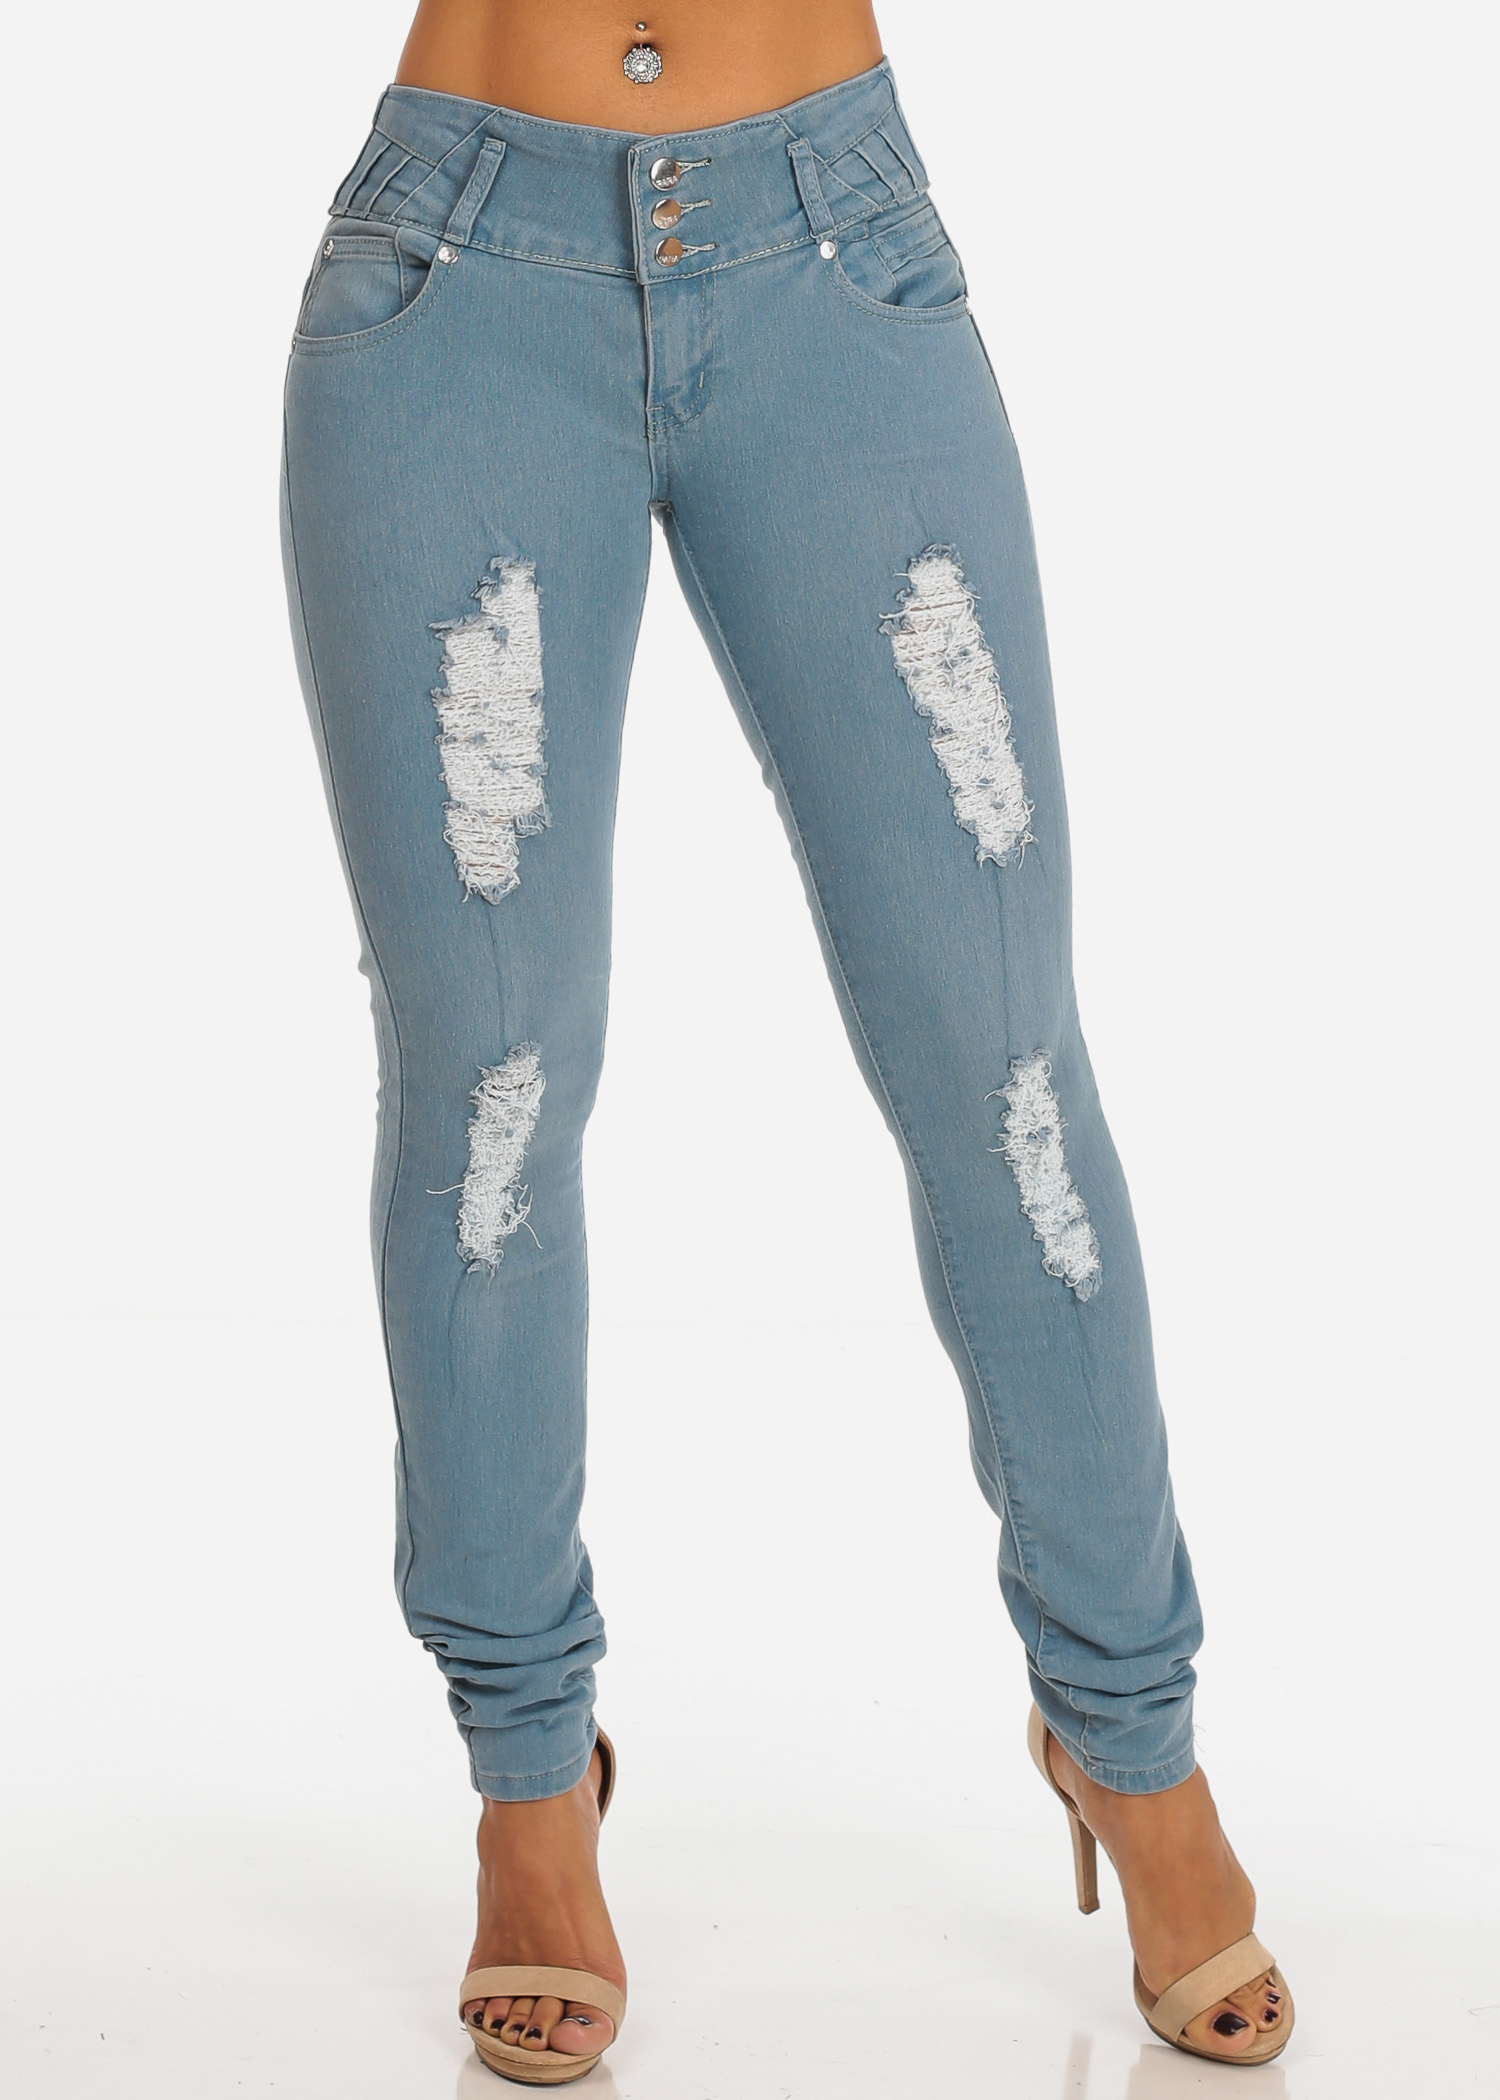 Womens Juniors Colombian Design Levanta Cola Light Wash 3 Button PUSH UP Ripped Distressed Stretchy Skinny Jeans 11053V